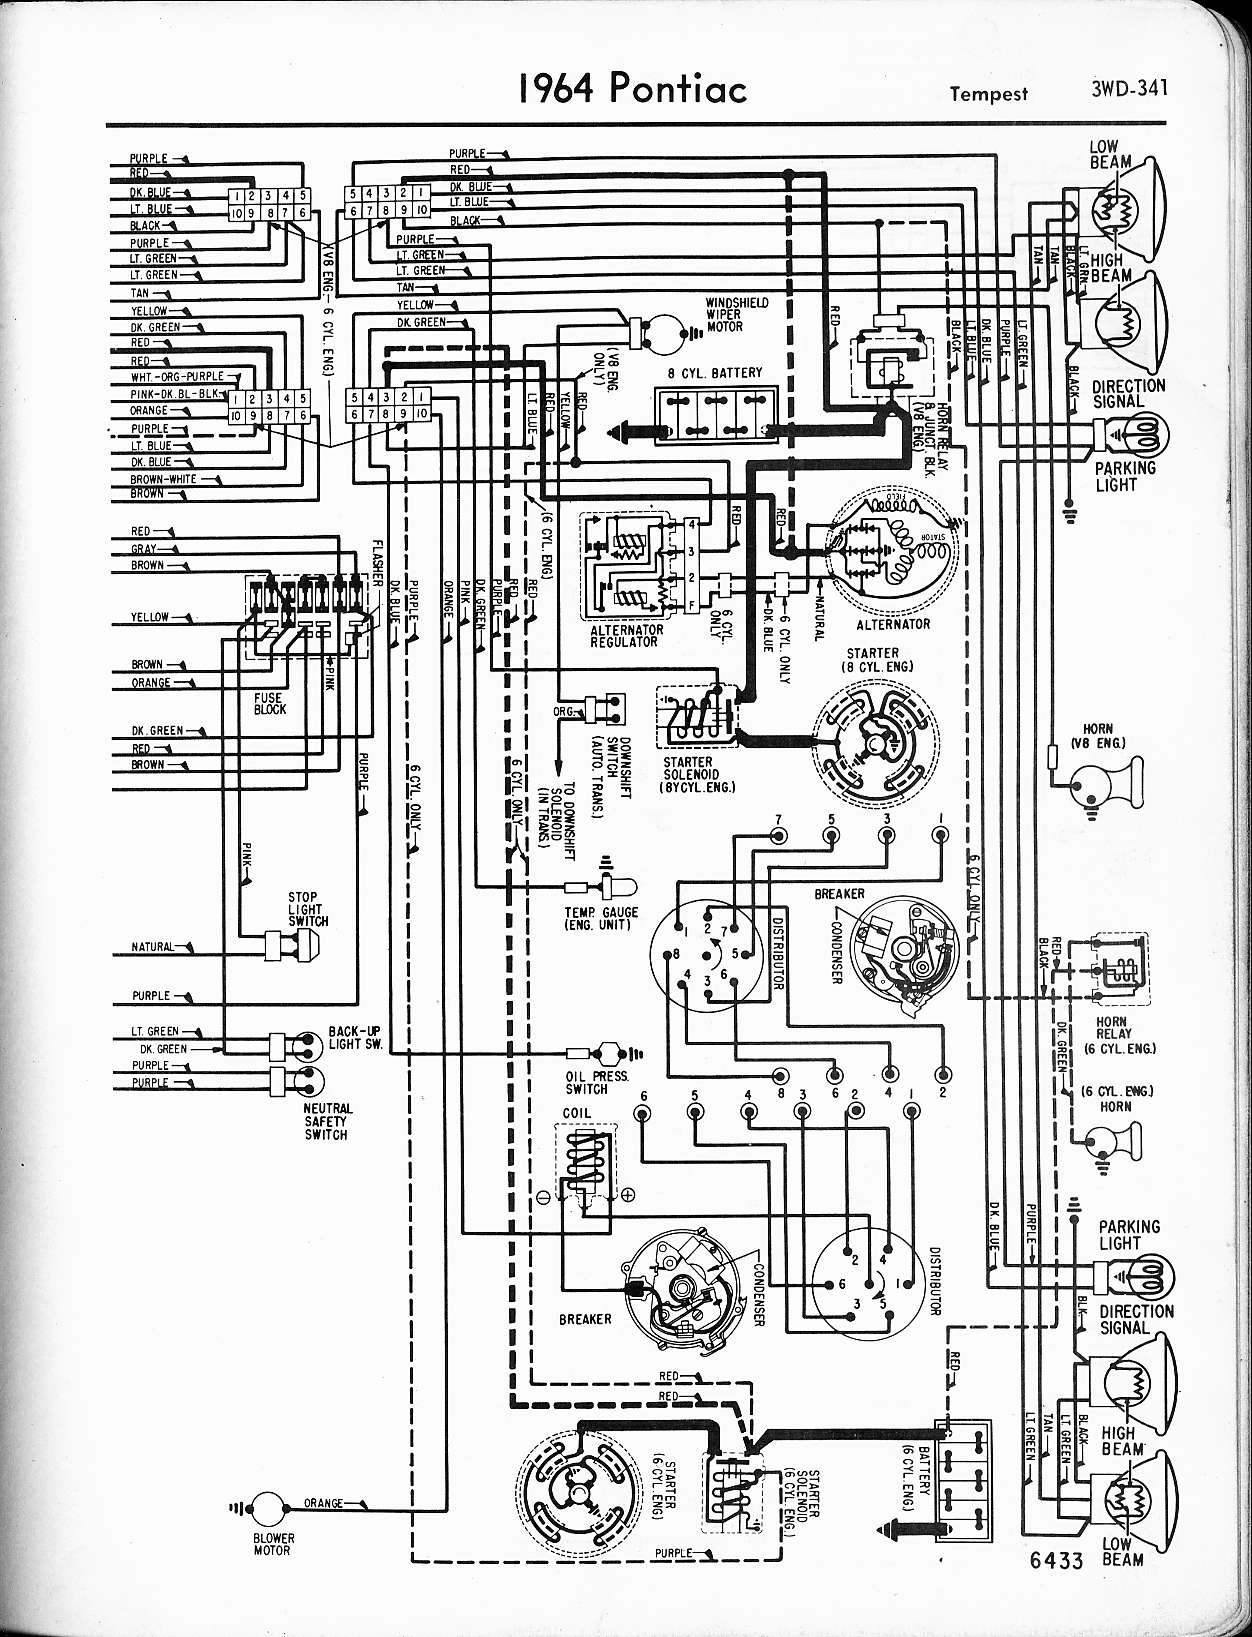 Wire diagram for pontiac wiring diagrams instructions rh ww2 ww w freeautoresponder co 1964 pontiac bonneville wiring diagram 2003 pontiac grand am wiring